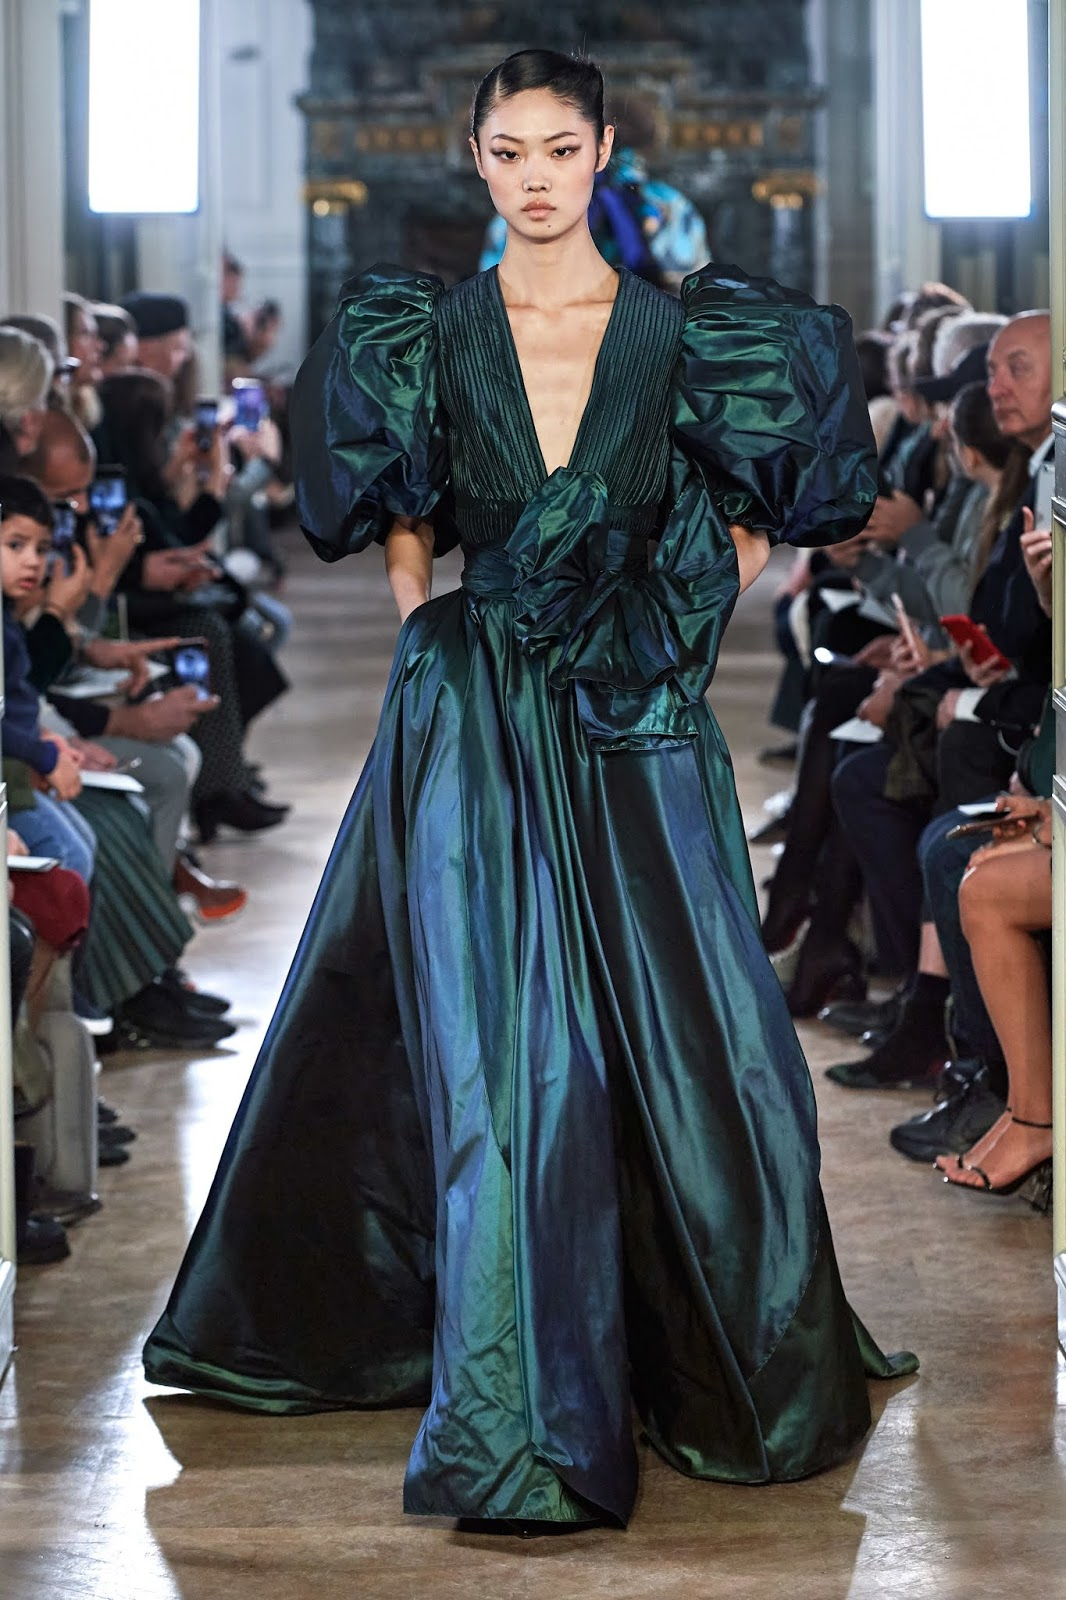 Elie Saab | Fall/Winter 2019/20 | Paris Fashion Week